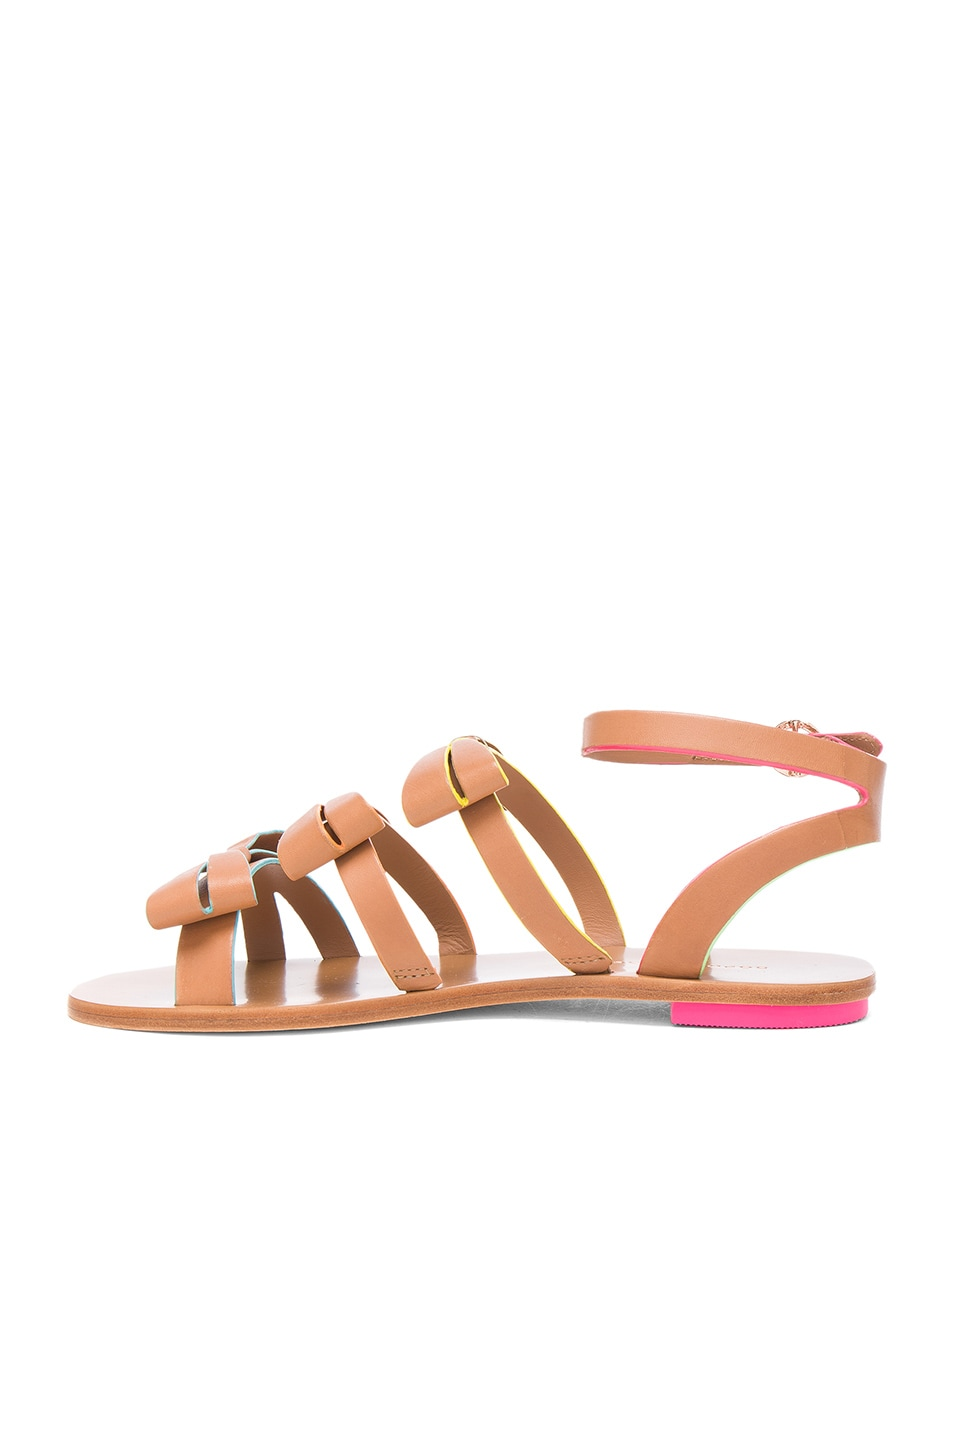 Image 5 of Sophia Webster Leather Samara Flat Sandals in Tan